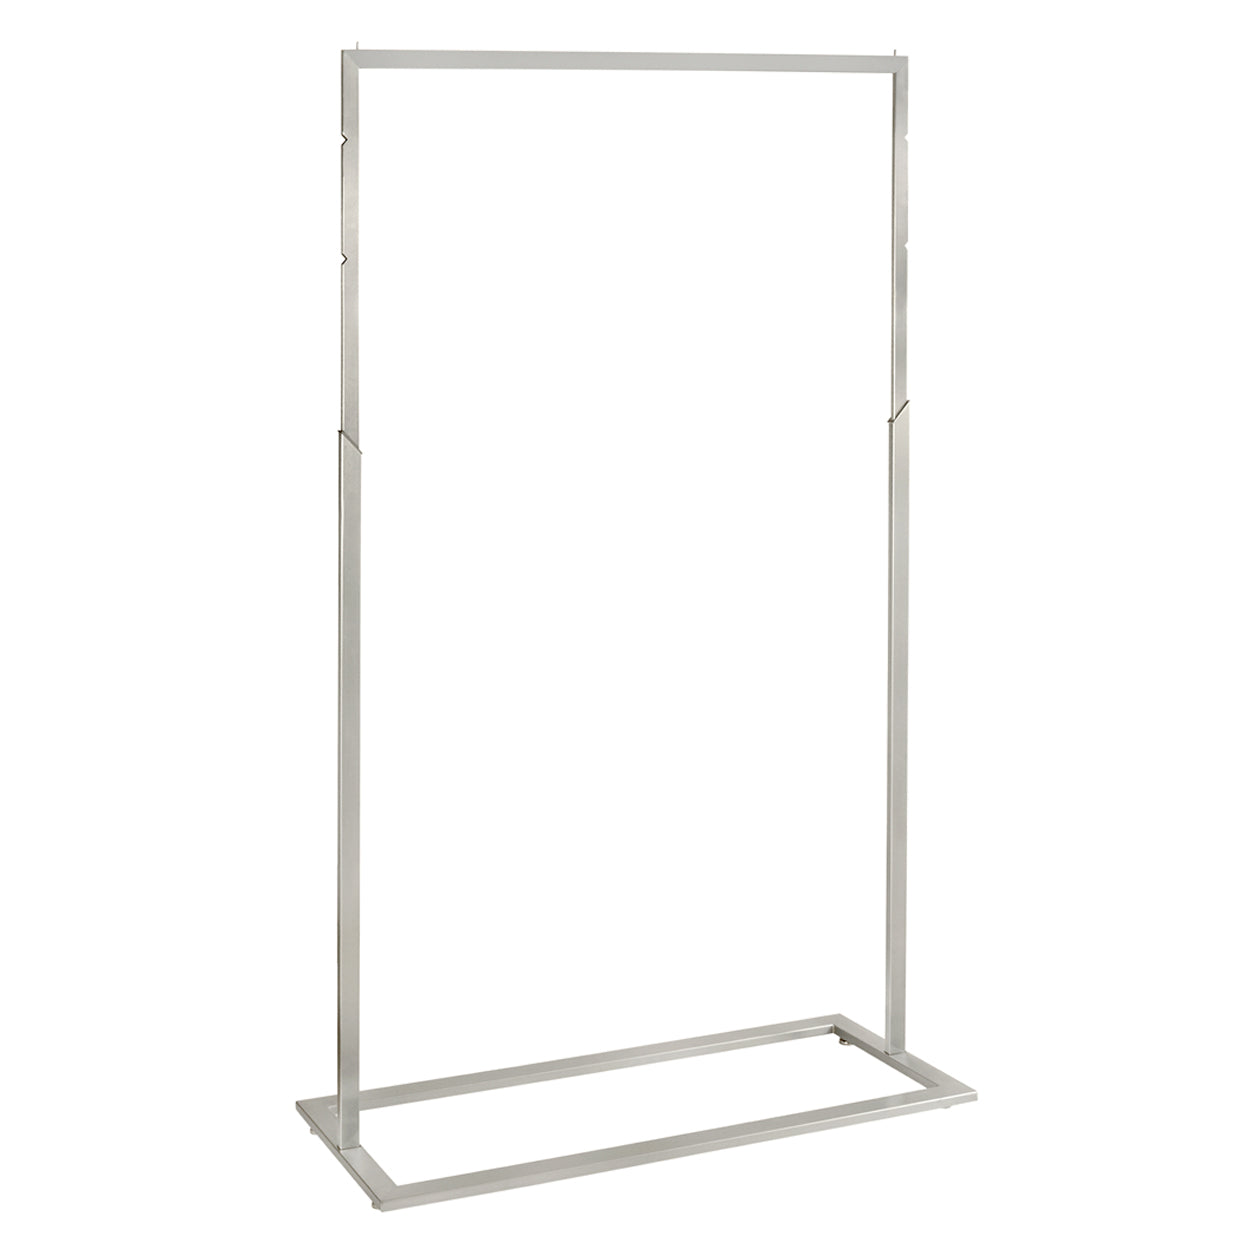 Style clothes rack with adjustable height 1200 mm w  1220 W x 1400-1900 H x 457 mmD R1522SC